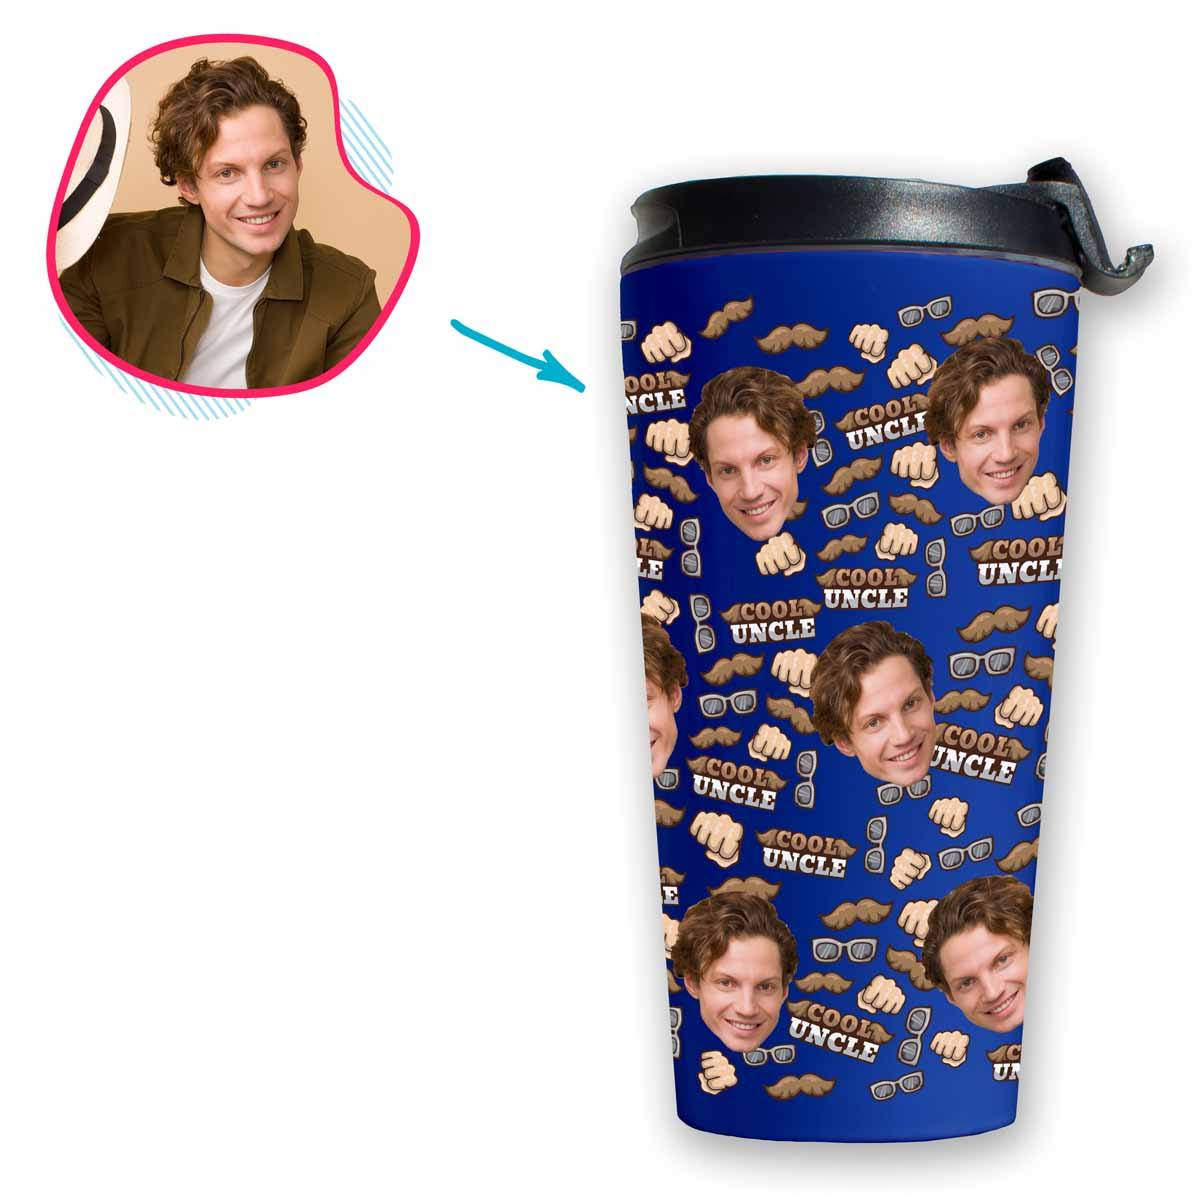 Darkblue Uncle personalized travel mug with photo of face printed on it